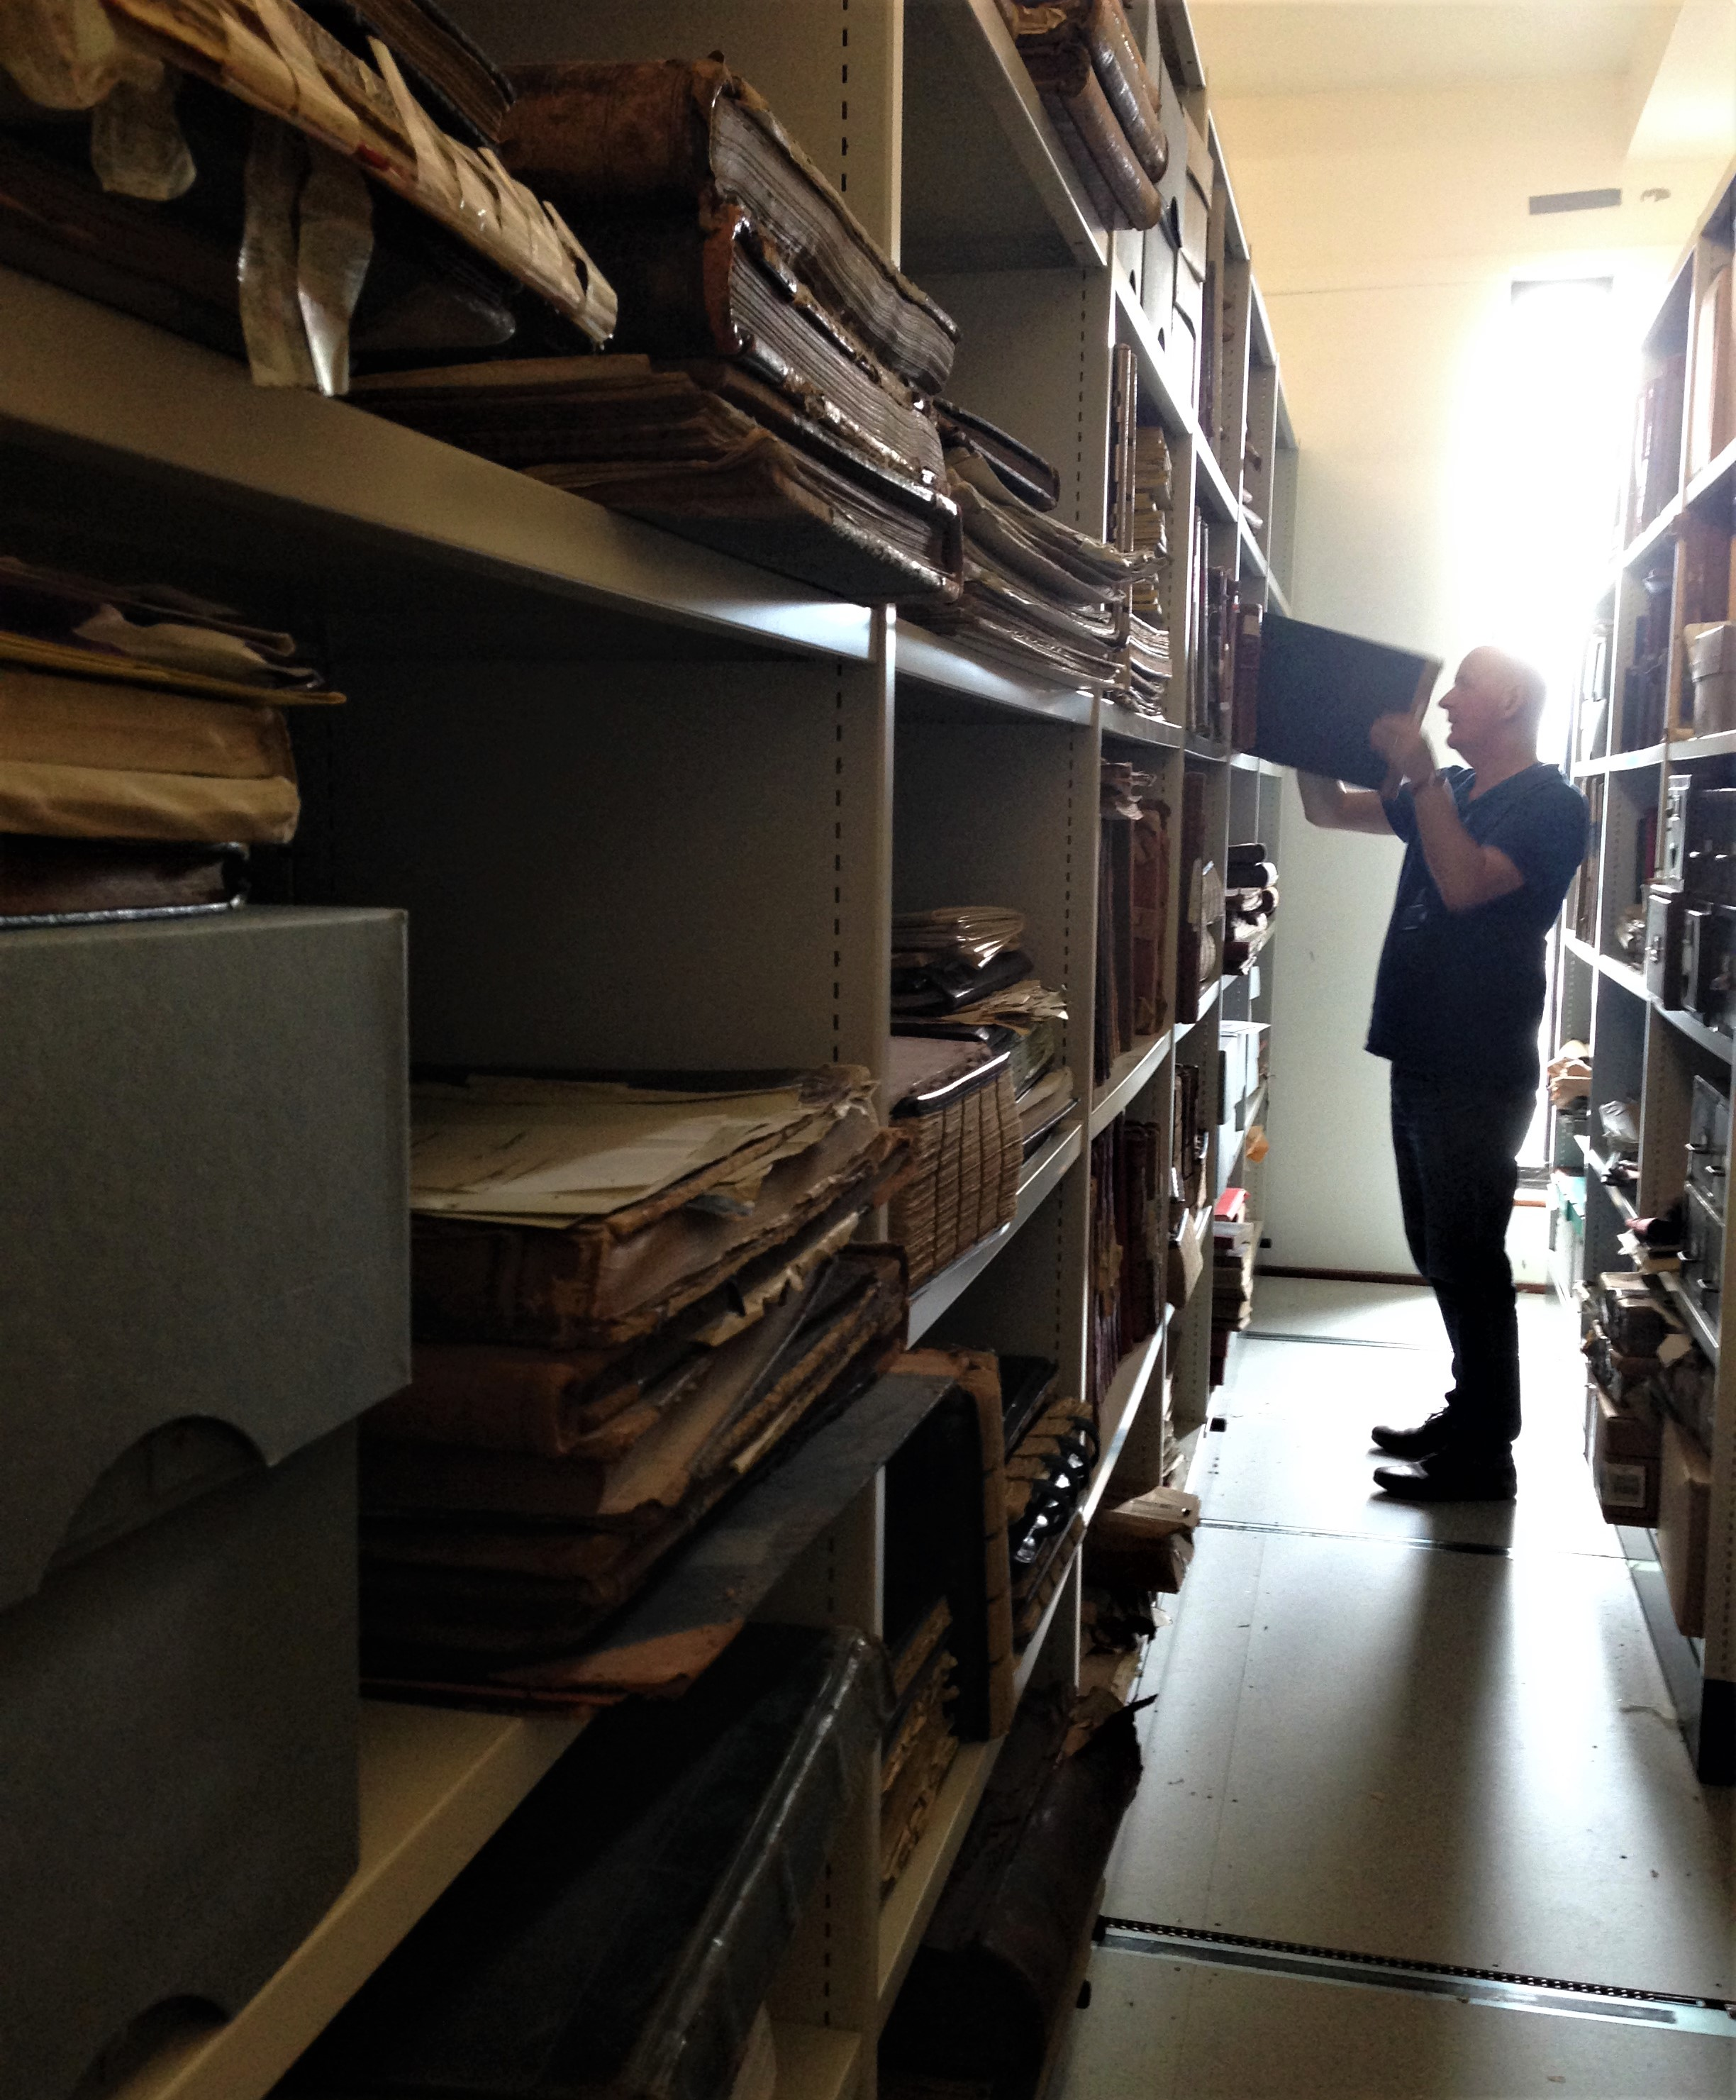 1-Mike Lynch Archivist Kerry County Library